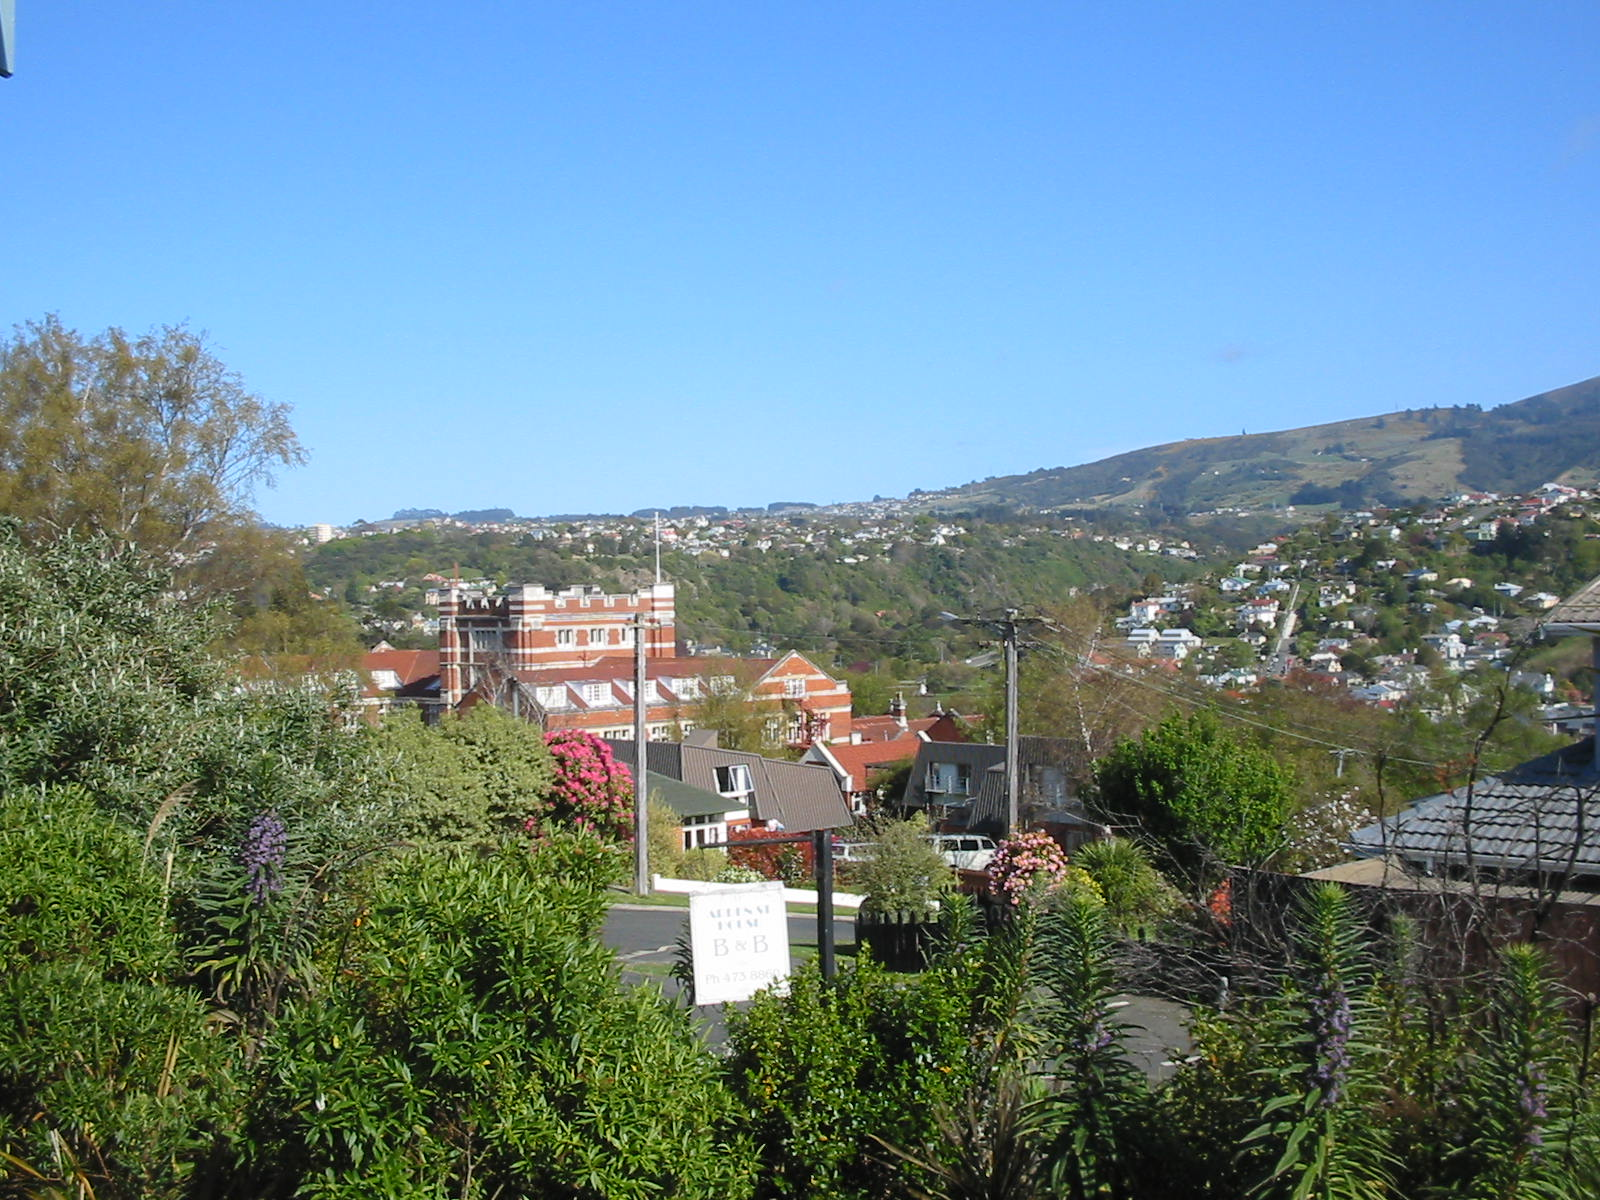 The view towards nearby Knox College From Arden Street House